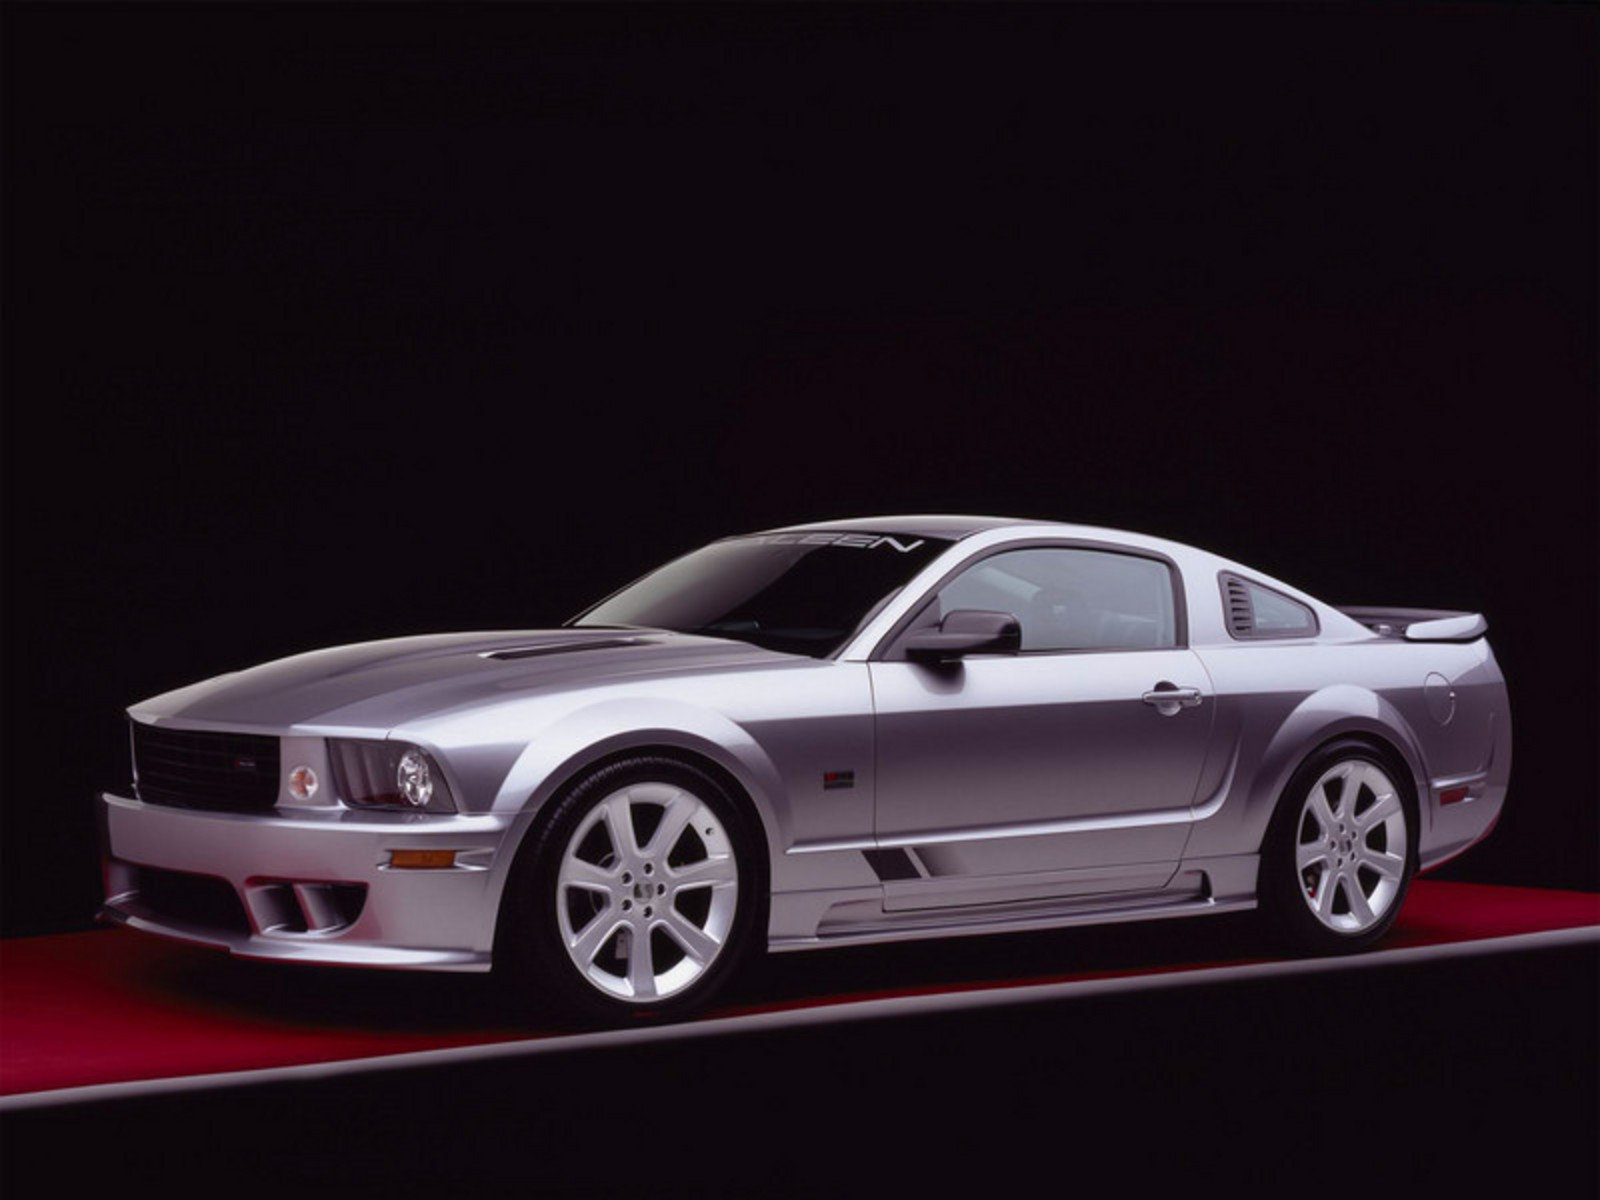 2005 saleen s281 mustang picture 49508 car review. Black Bedroom Furniture Sets. Home Design Ideas